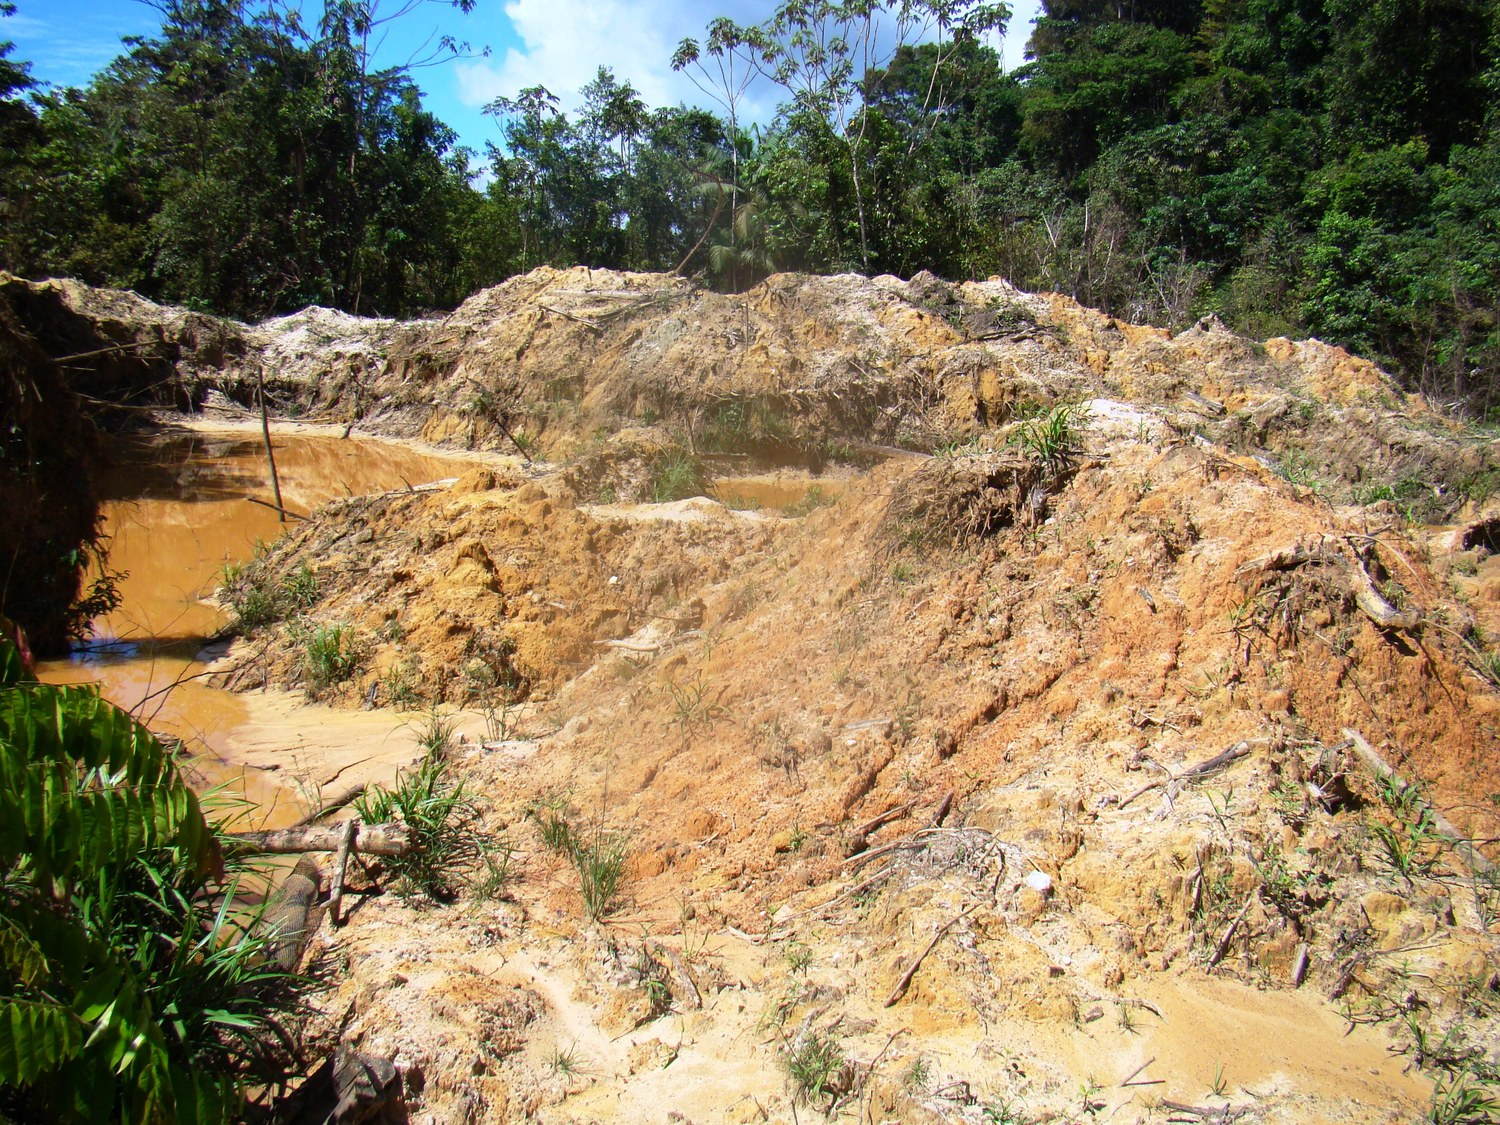 The scars of illegal gold mining in Suriname, South America (photo by William Laurance)